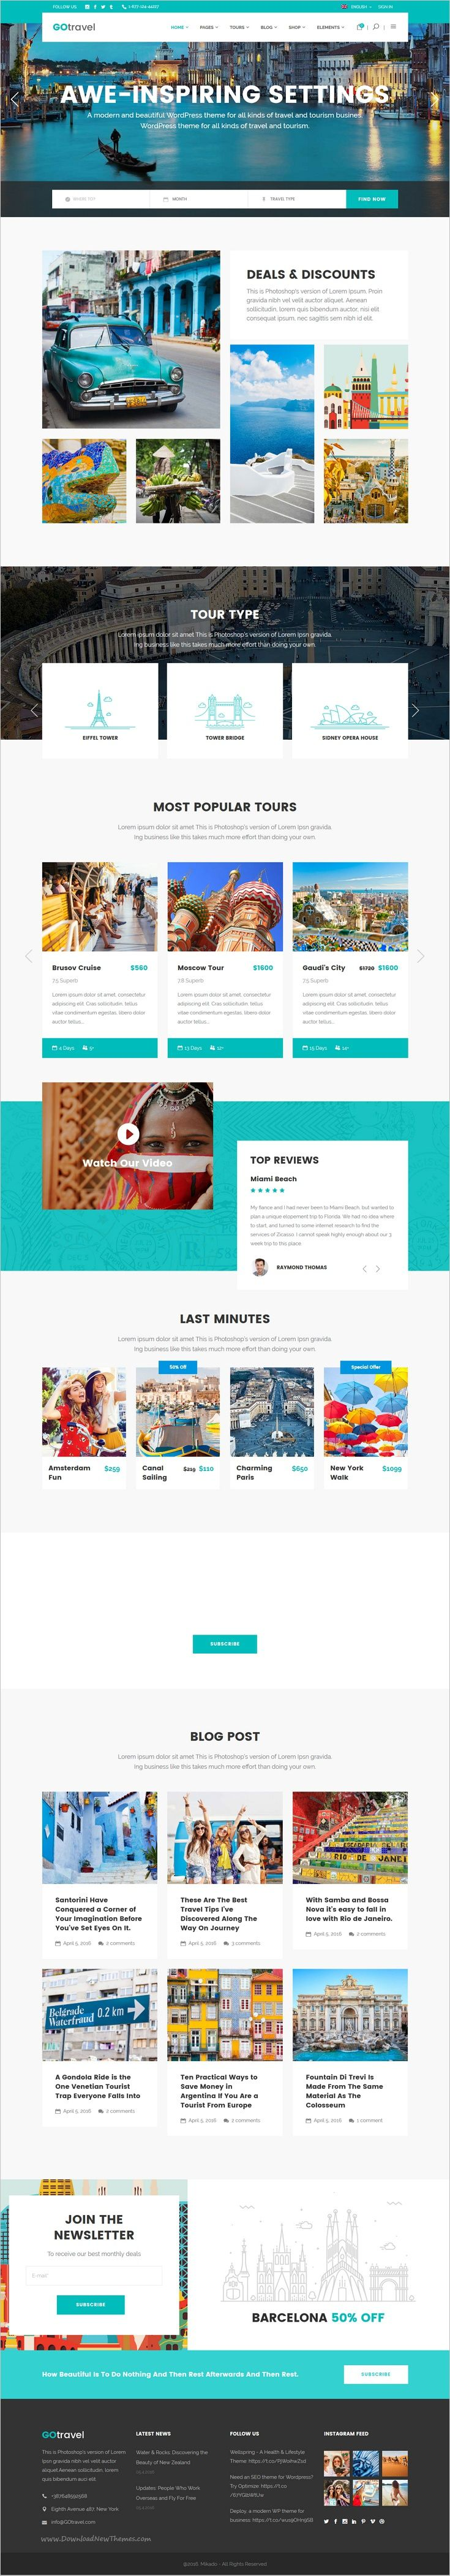 GoTravel is a wonderful responsive #WordPress theme for #travel and tour agencies perfect #websites download now➩ https://themeforest.net/item/gotravel-a-travel-agency-tourism-theme/18939921?ref=Datasata